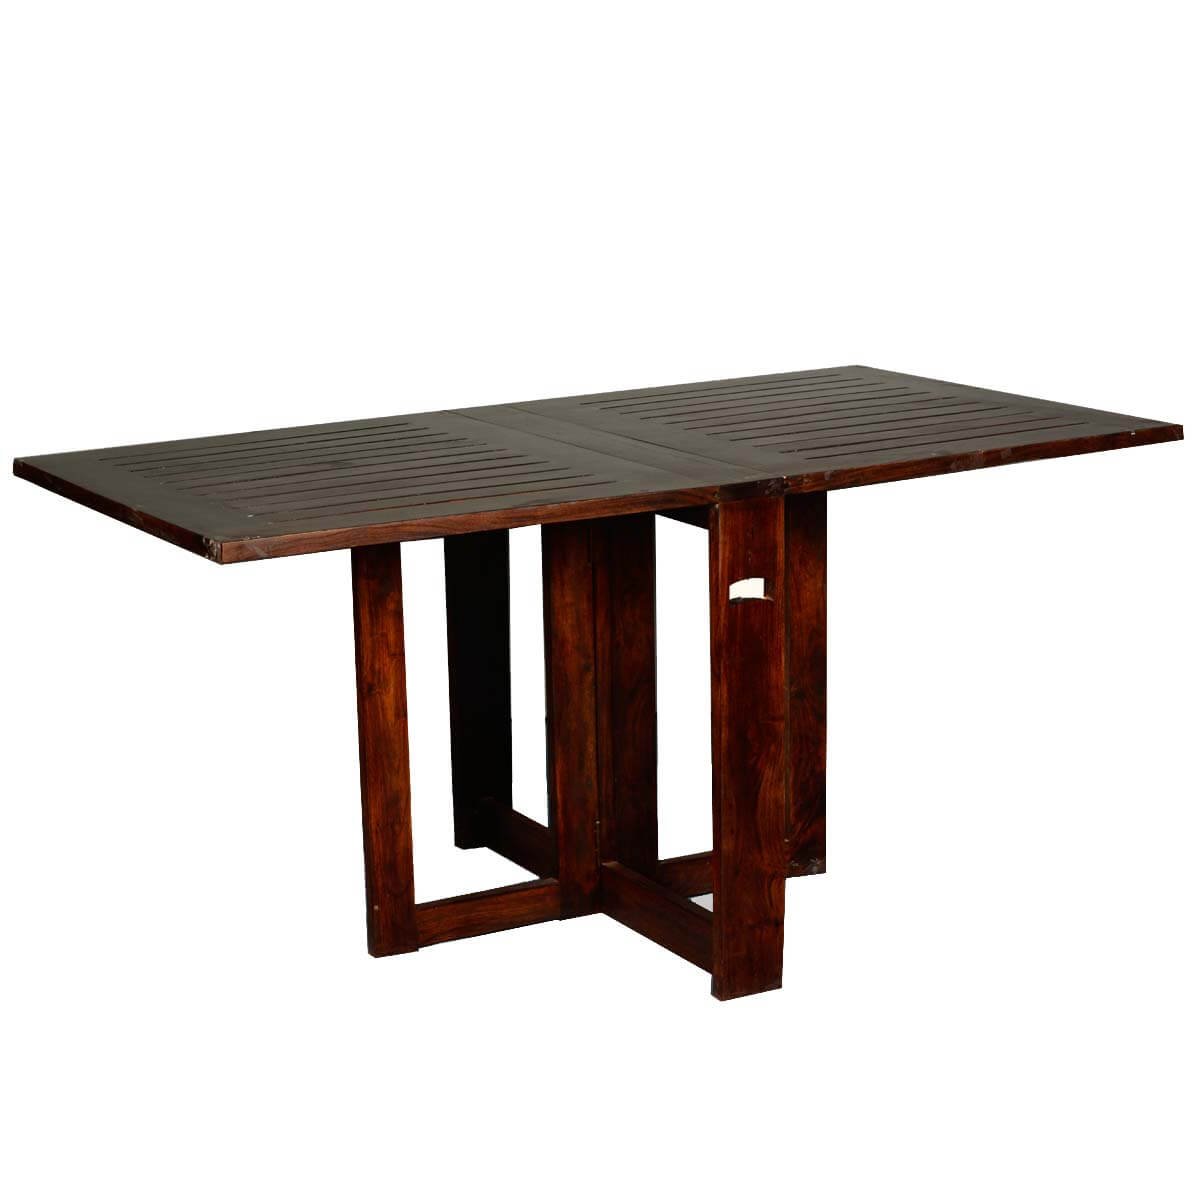 Incredible solid wood 4 square pedestal folding dining for Pedestal dining table